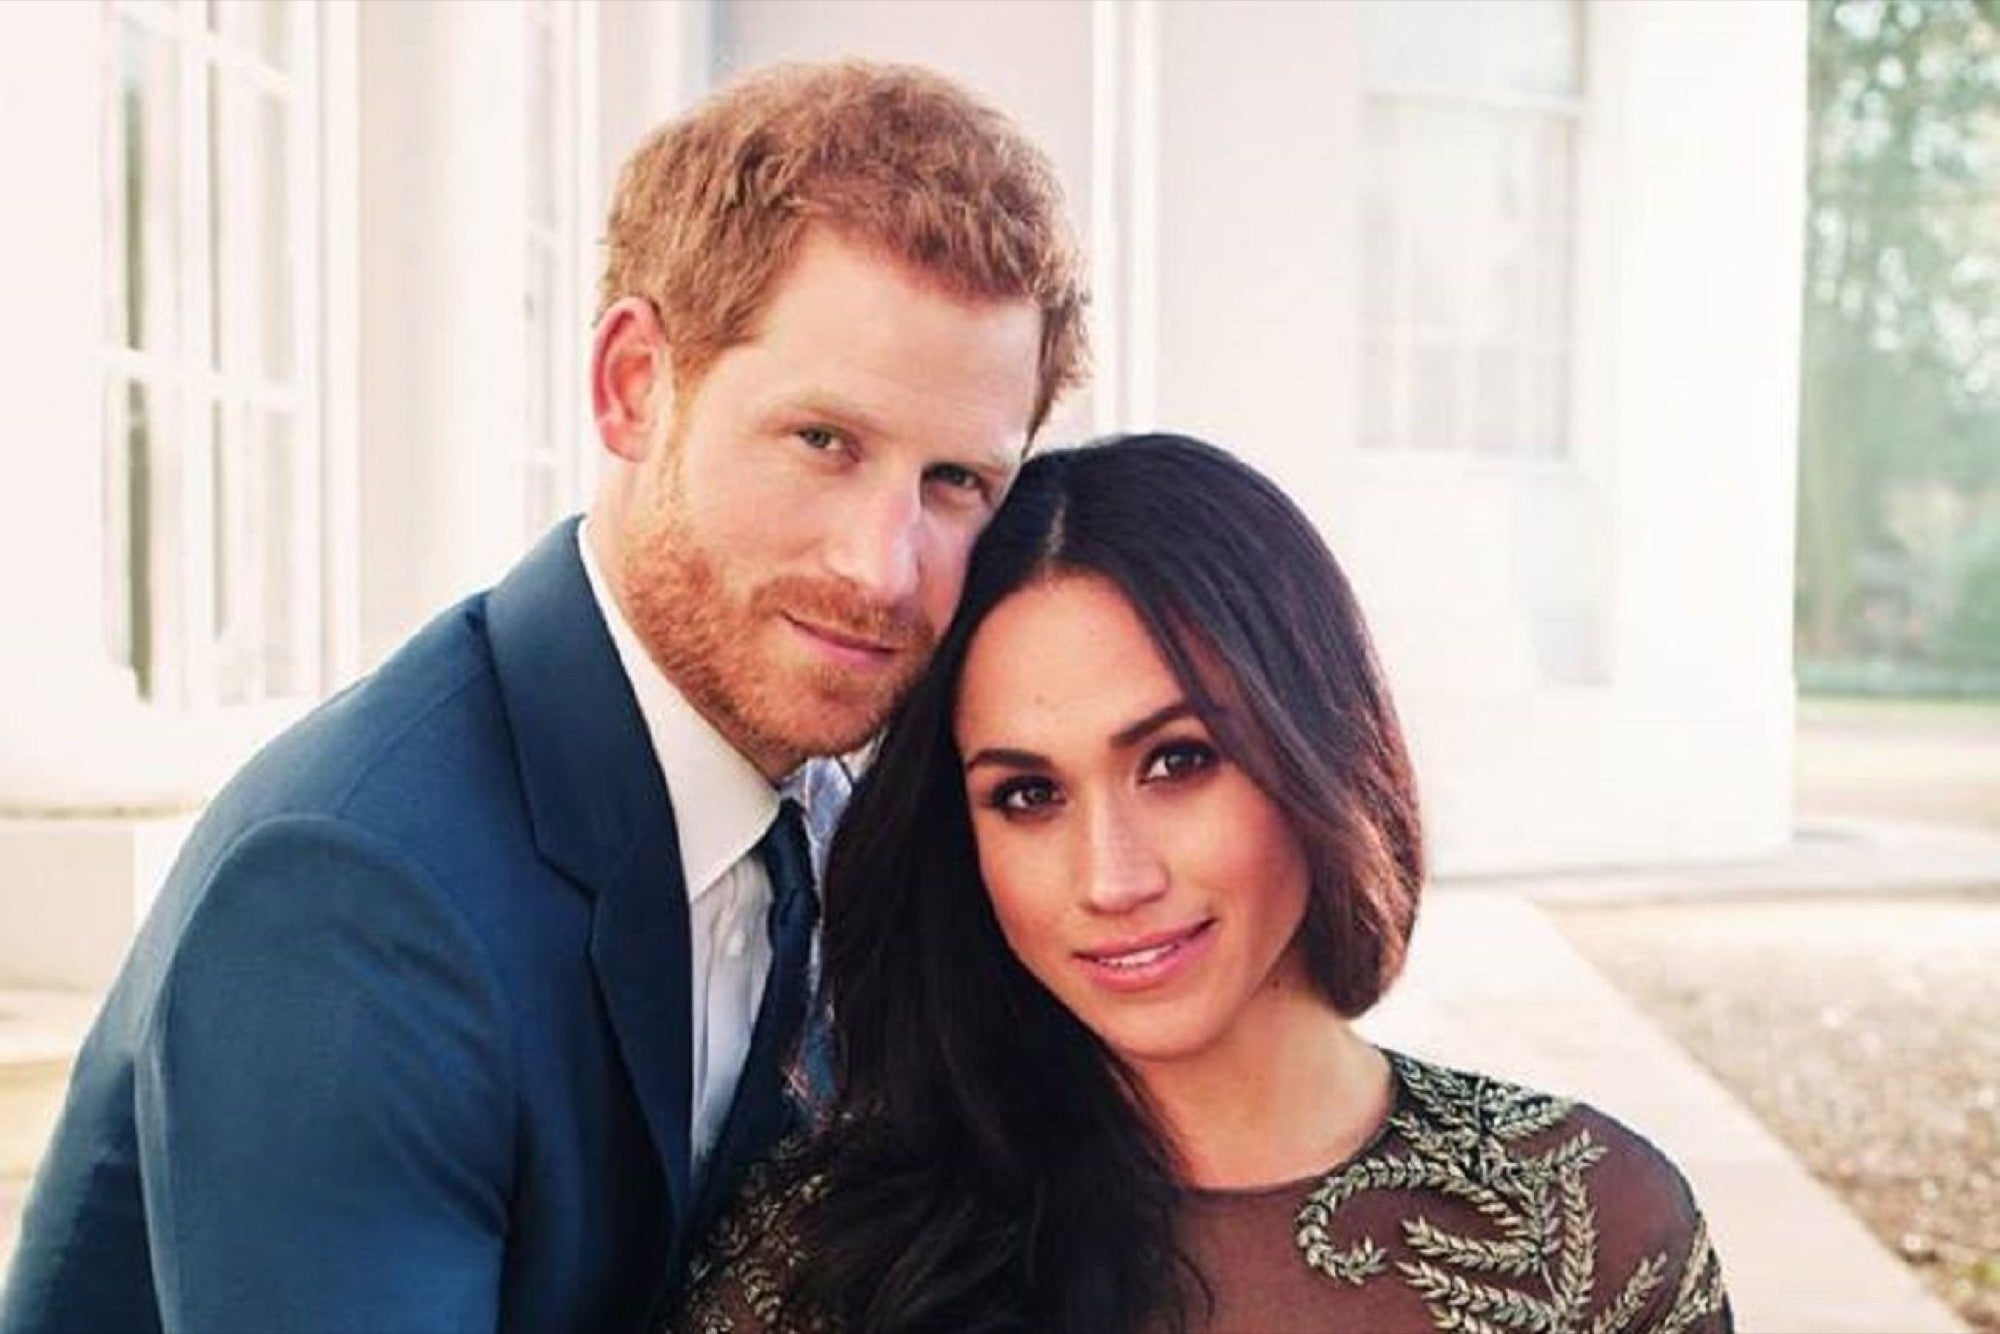 No Gifts Please Prince Harry And Meghan Markle Have Asked For Donations To This Indian Ngo